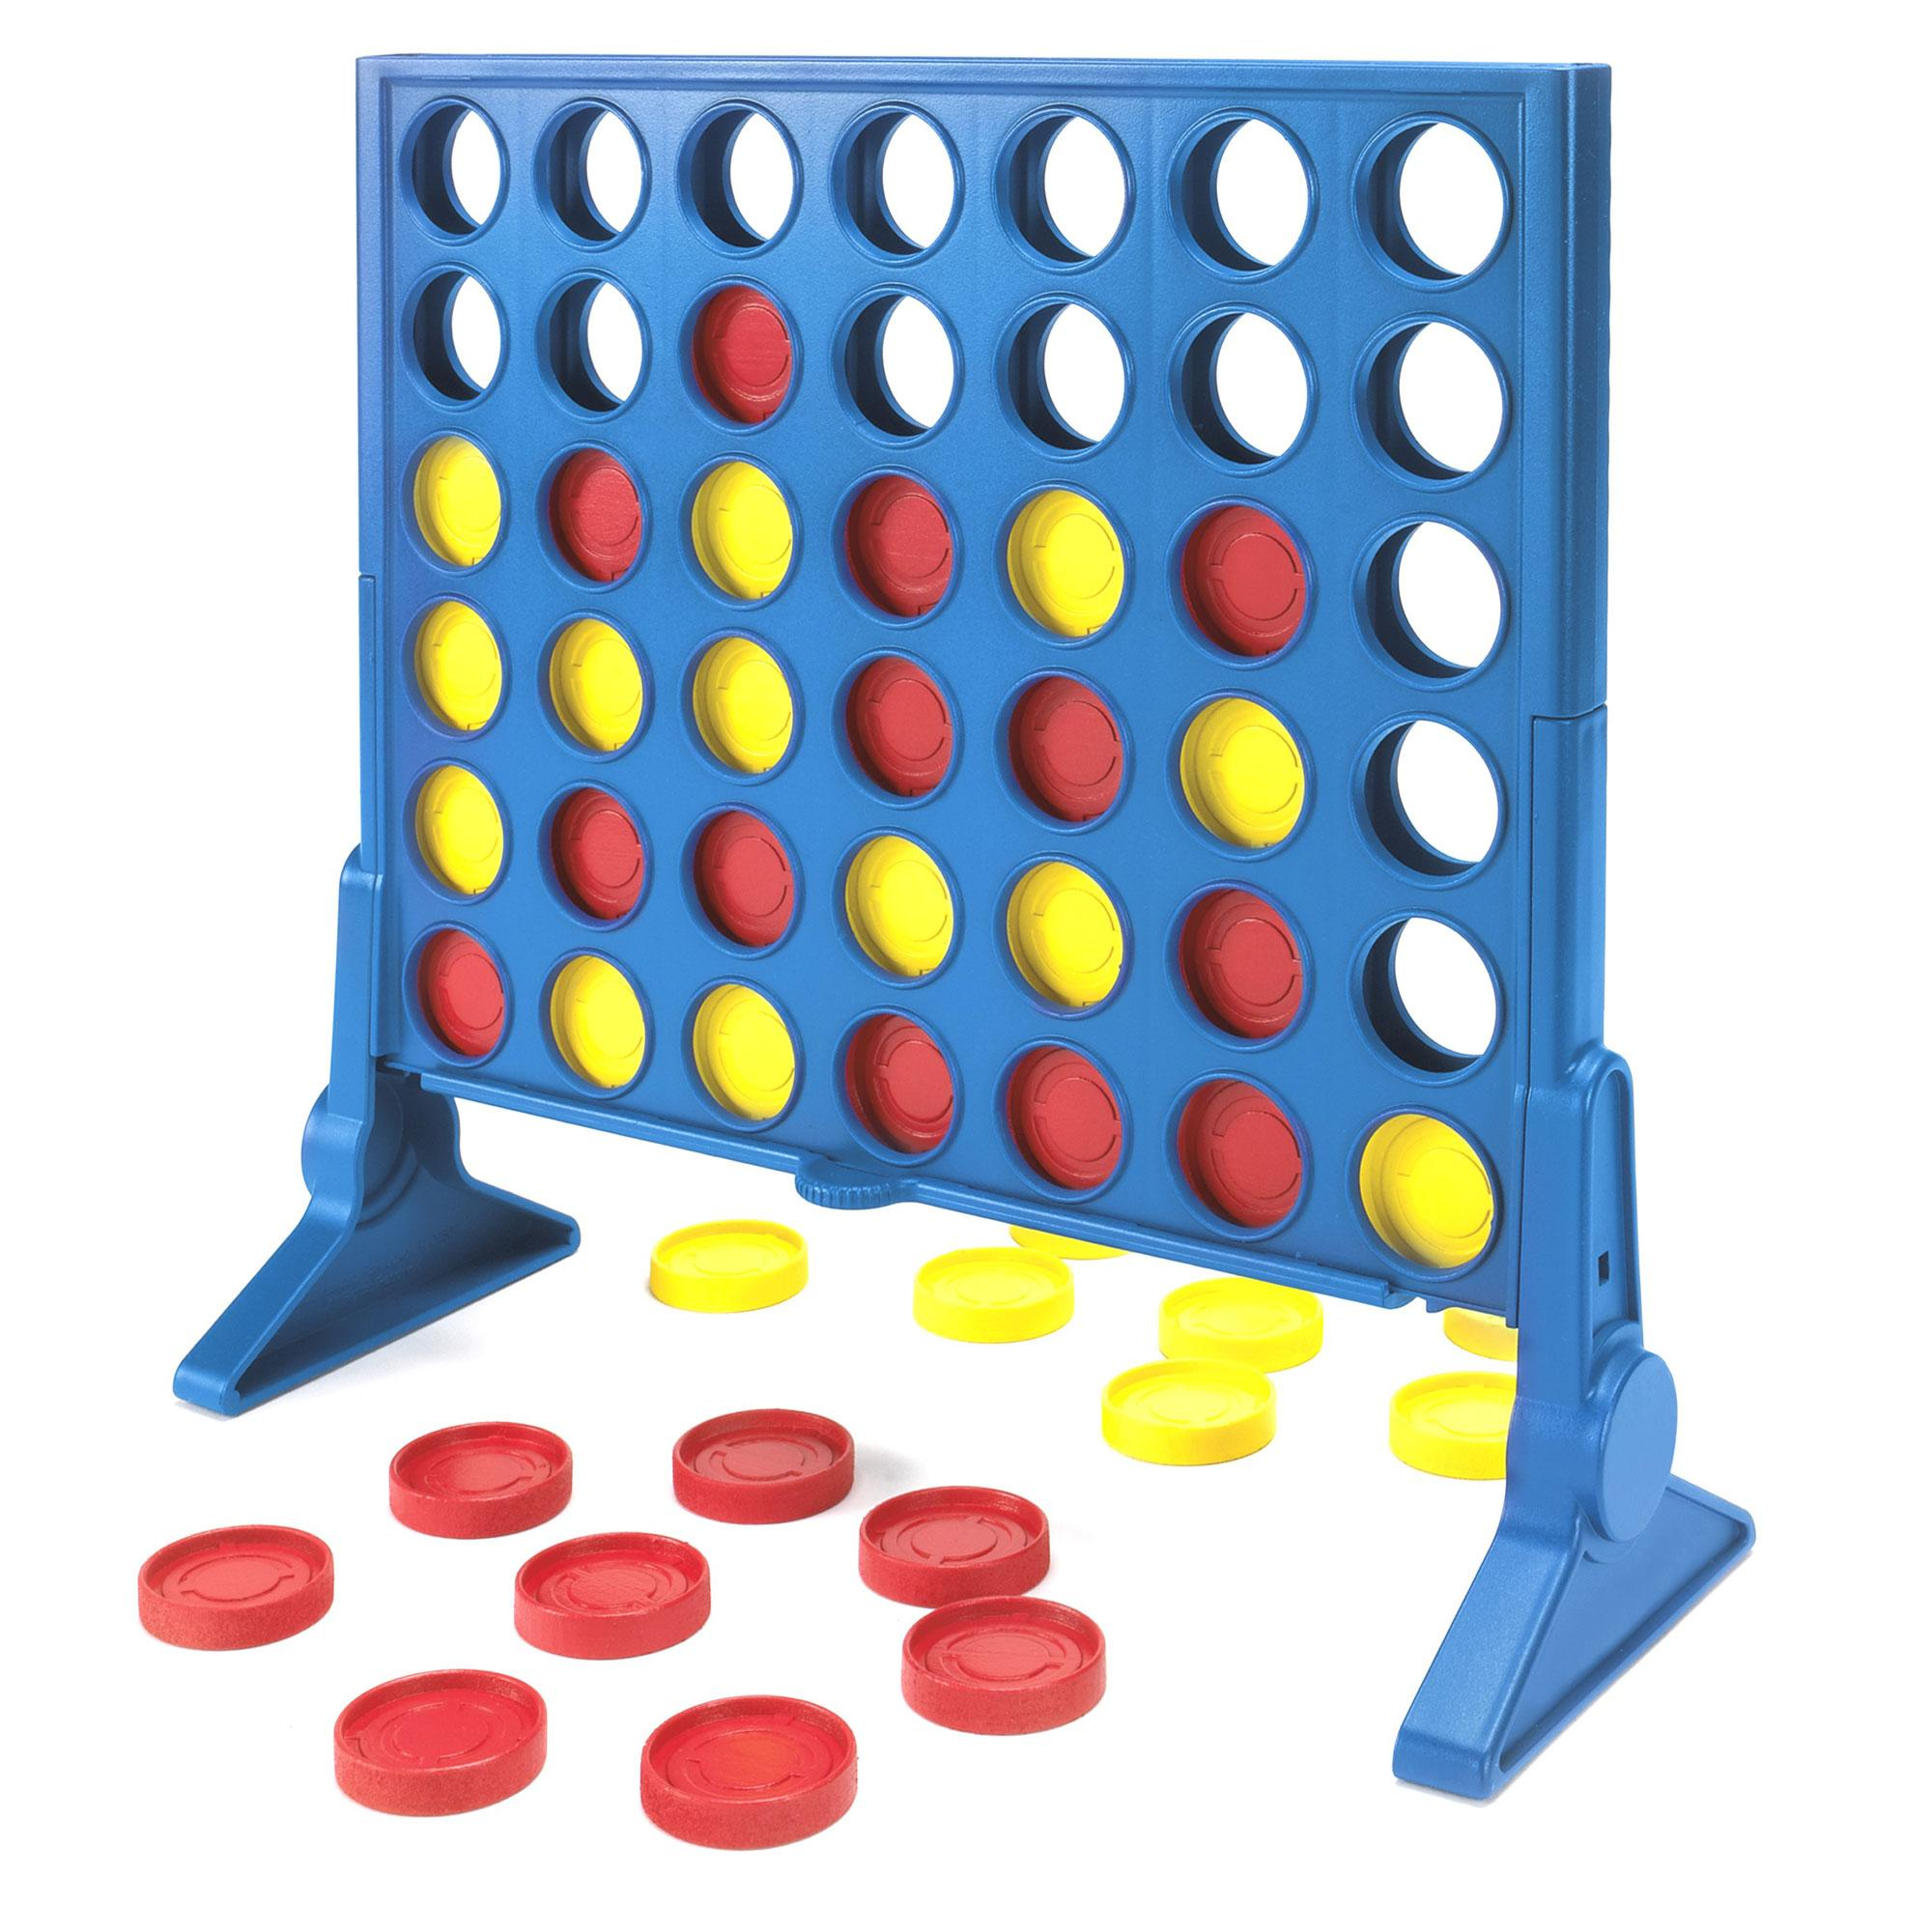 Free Connect Four Cliparts, Download Free Clip Art, Free Clip Art on.